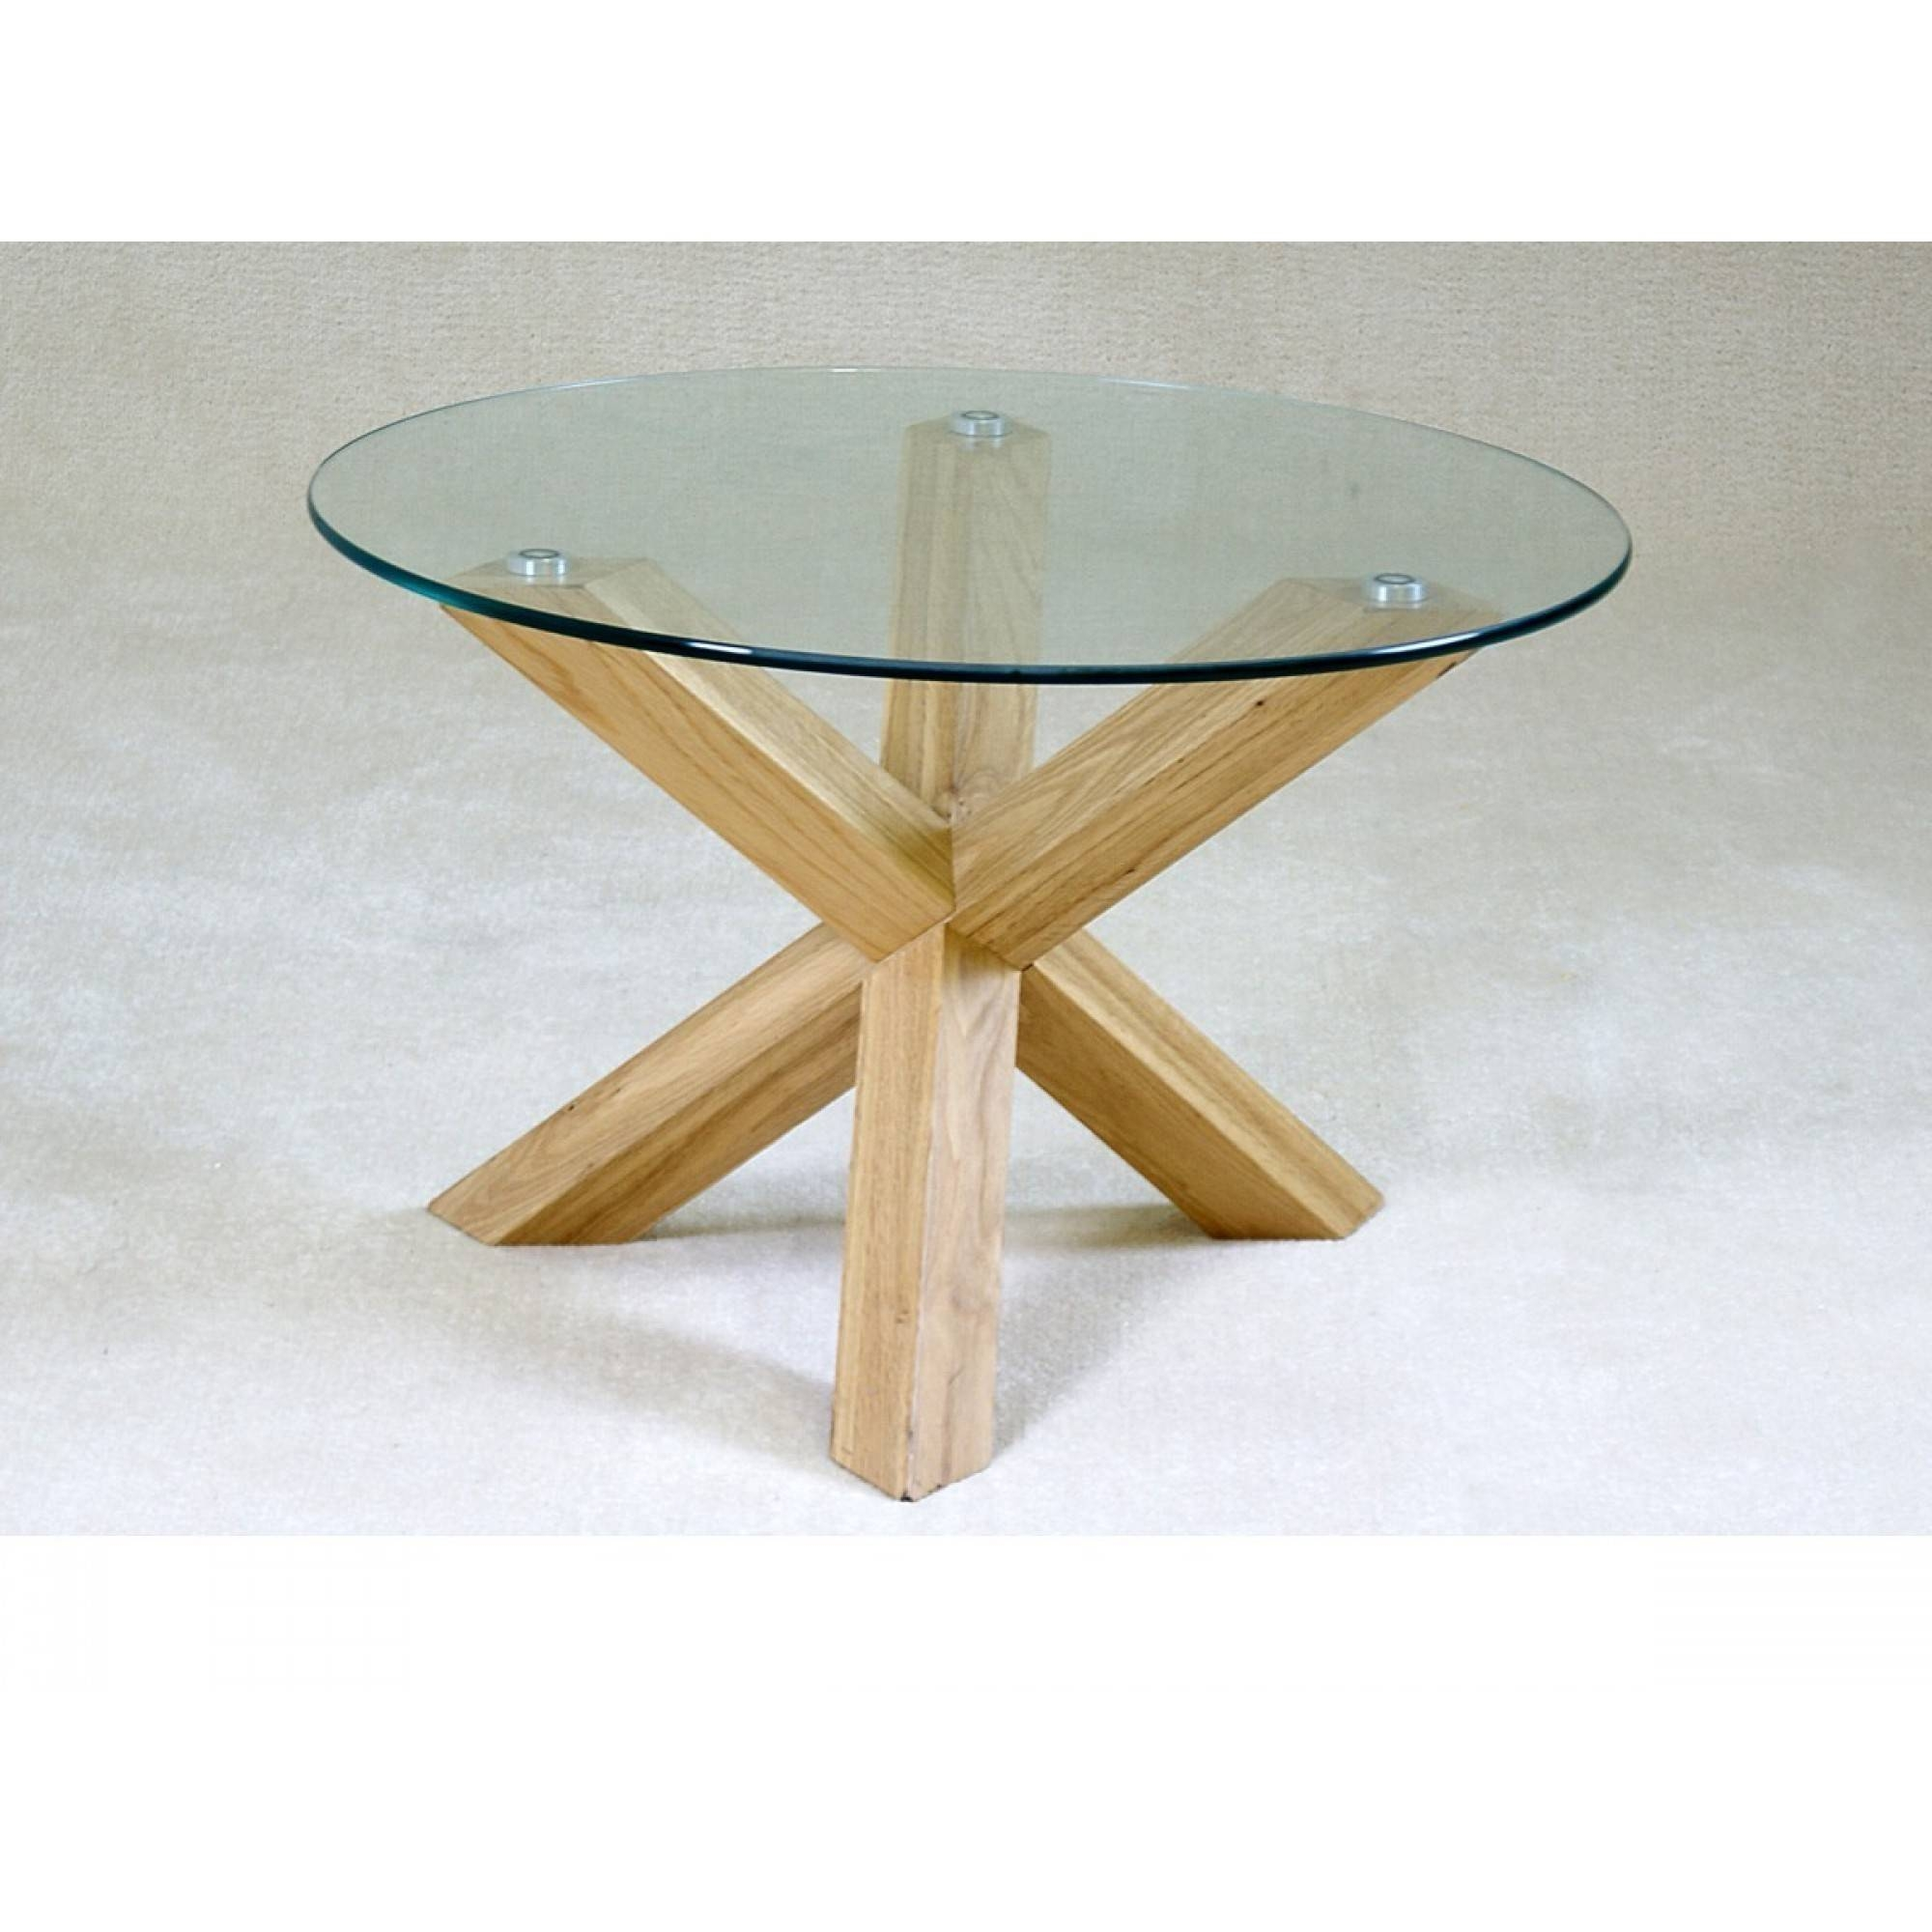 30 best collection of round oak coffee tables solid oak and glass coffee tables coffee tables decoration intended for round oak coffee tables geotapseo Gallery